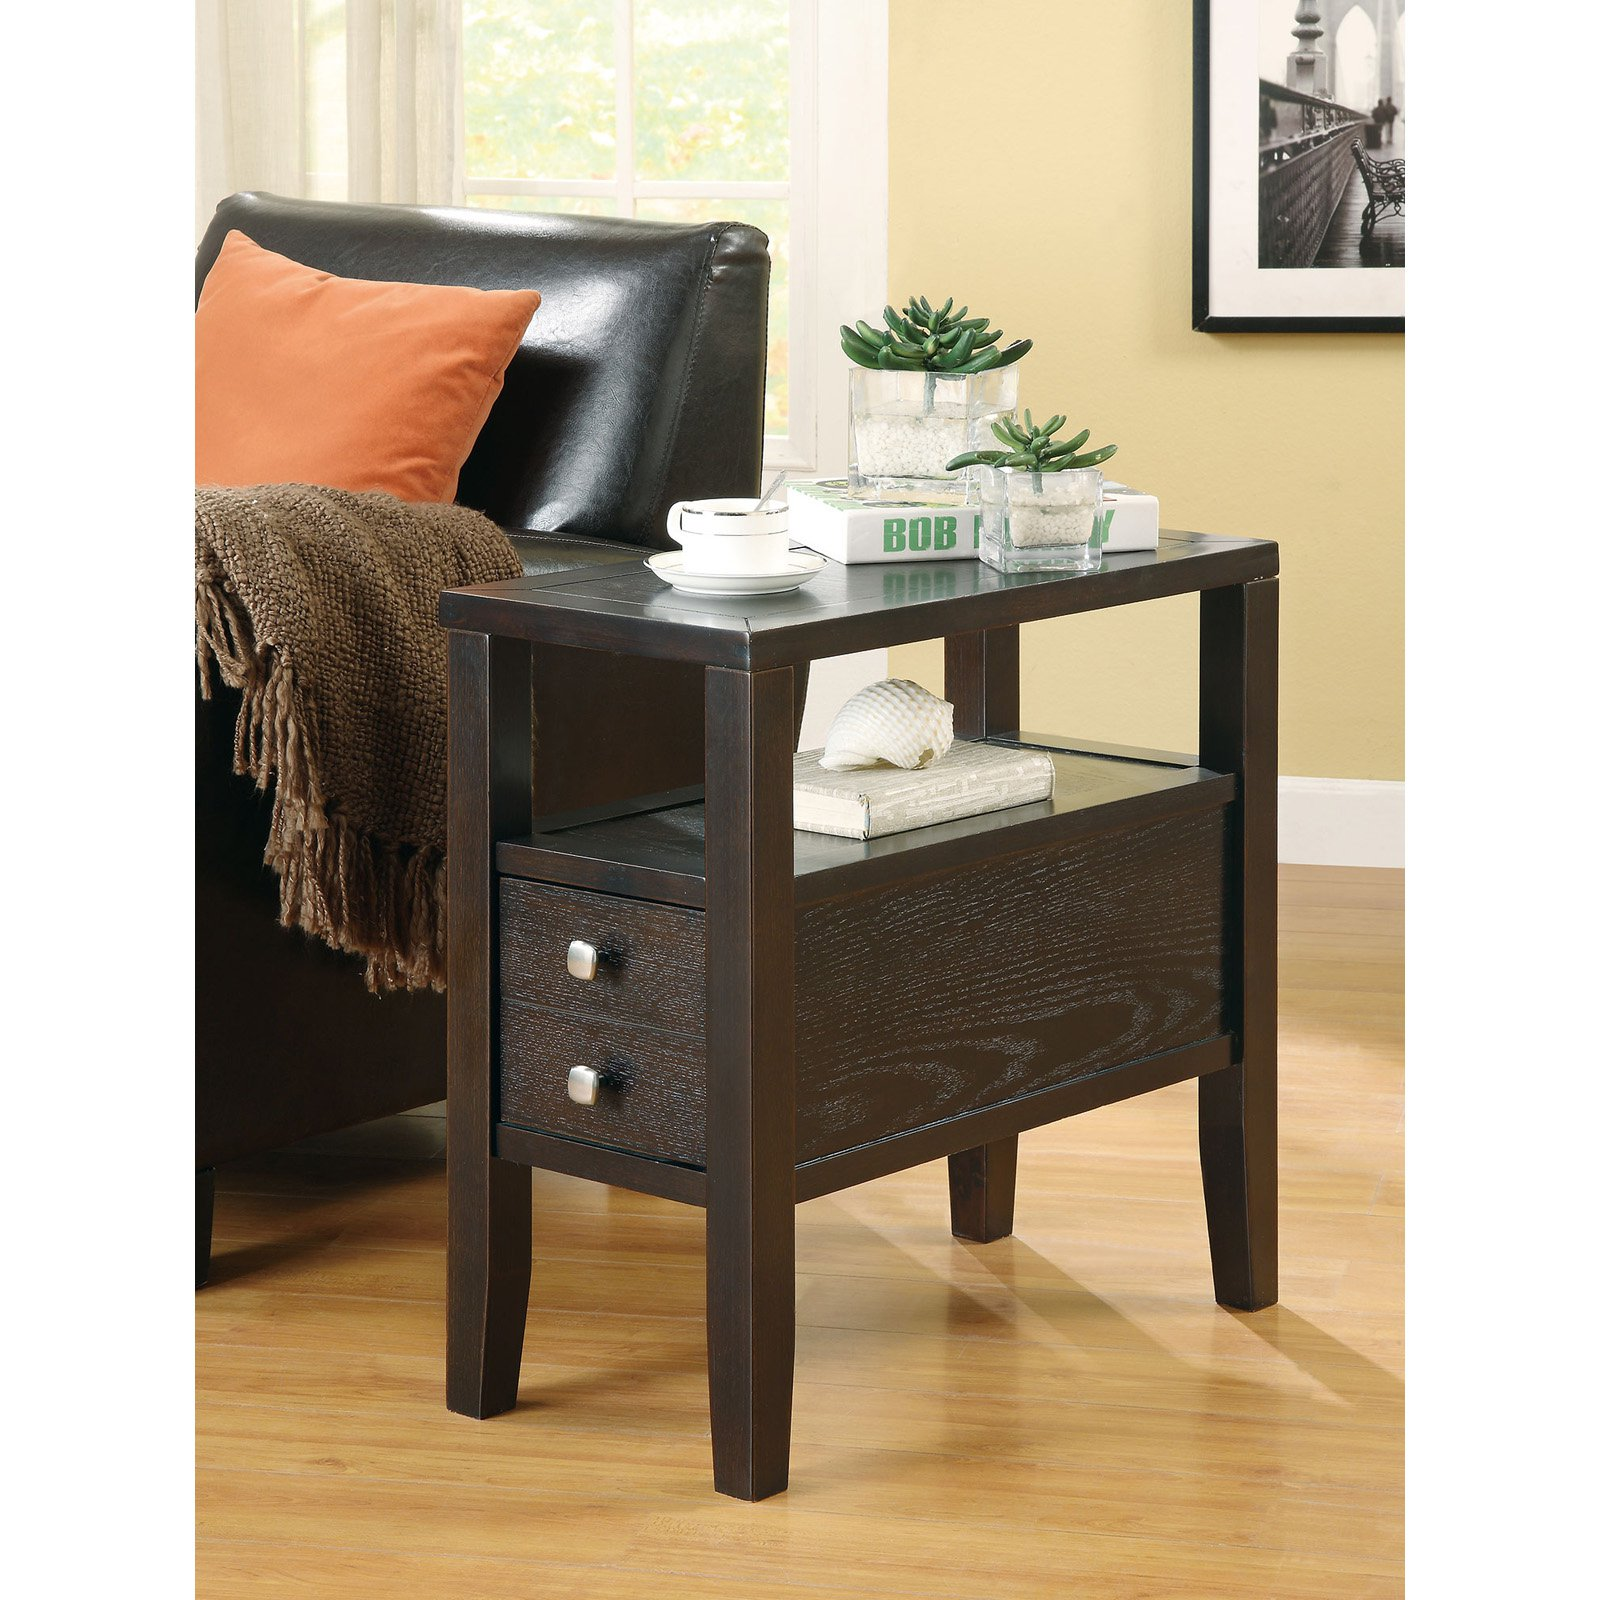 Coaster Furniture Cappuccino Modern Chairside End Table by Coaster